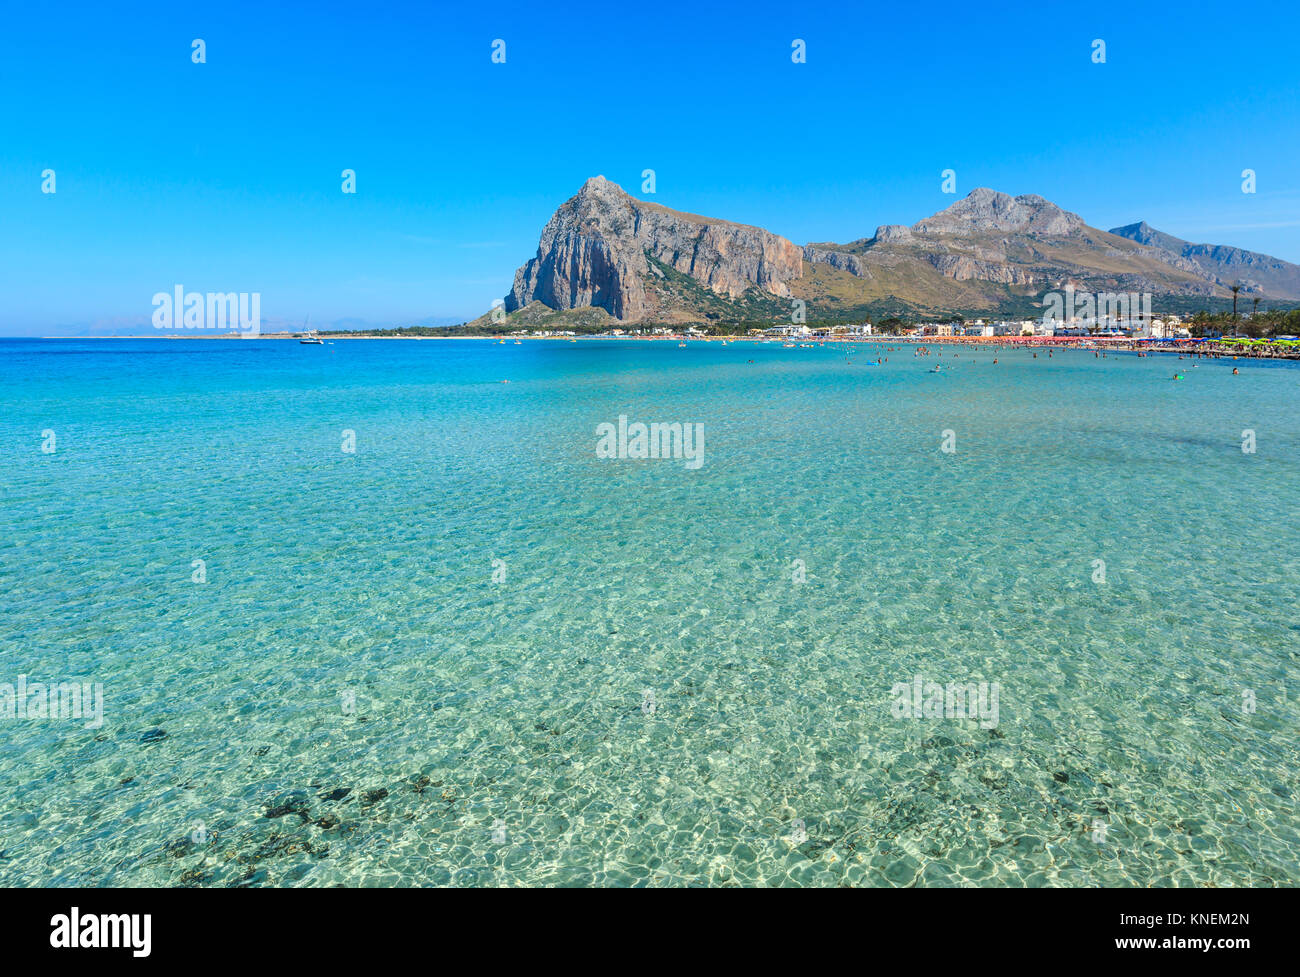 Paradise Tyrrhenian sea bay, San Vito lo Capo beach with clear azure water and extremally white sand, and Monte - Stock Image